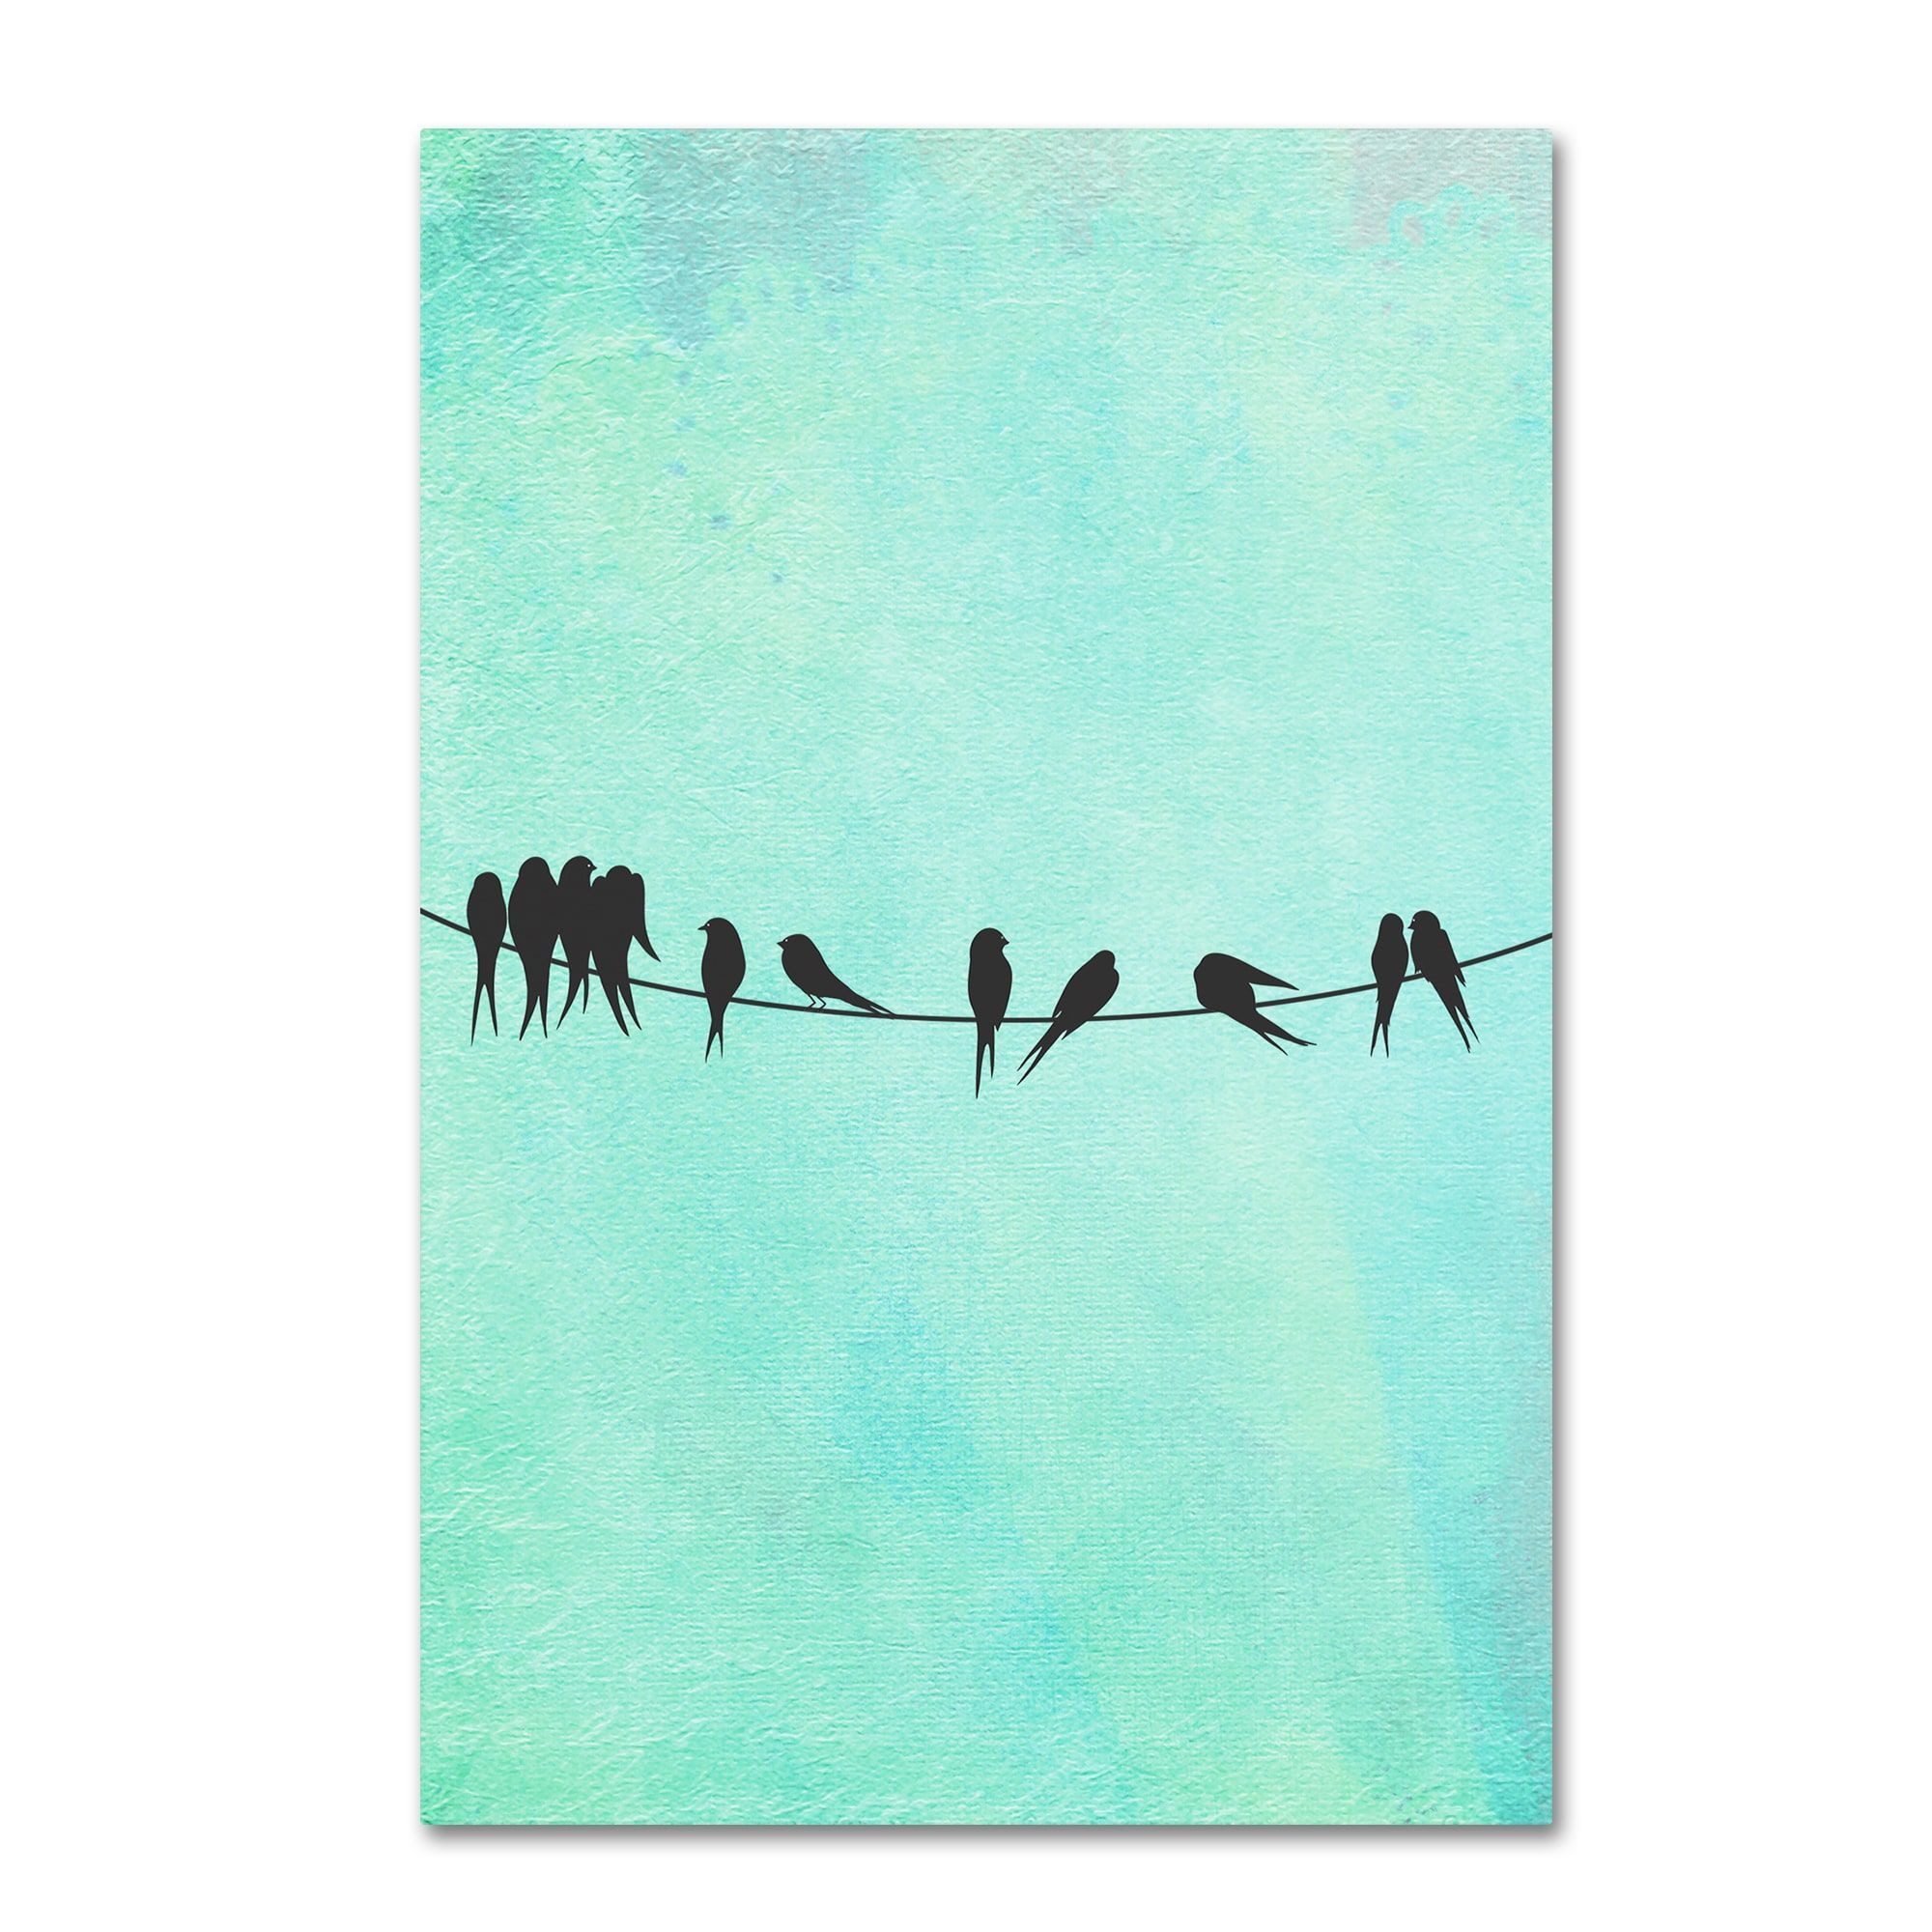 Tina Lavoie \'Birds On A Wire\' Canvas Art | Products | Pinterest ...